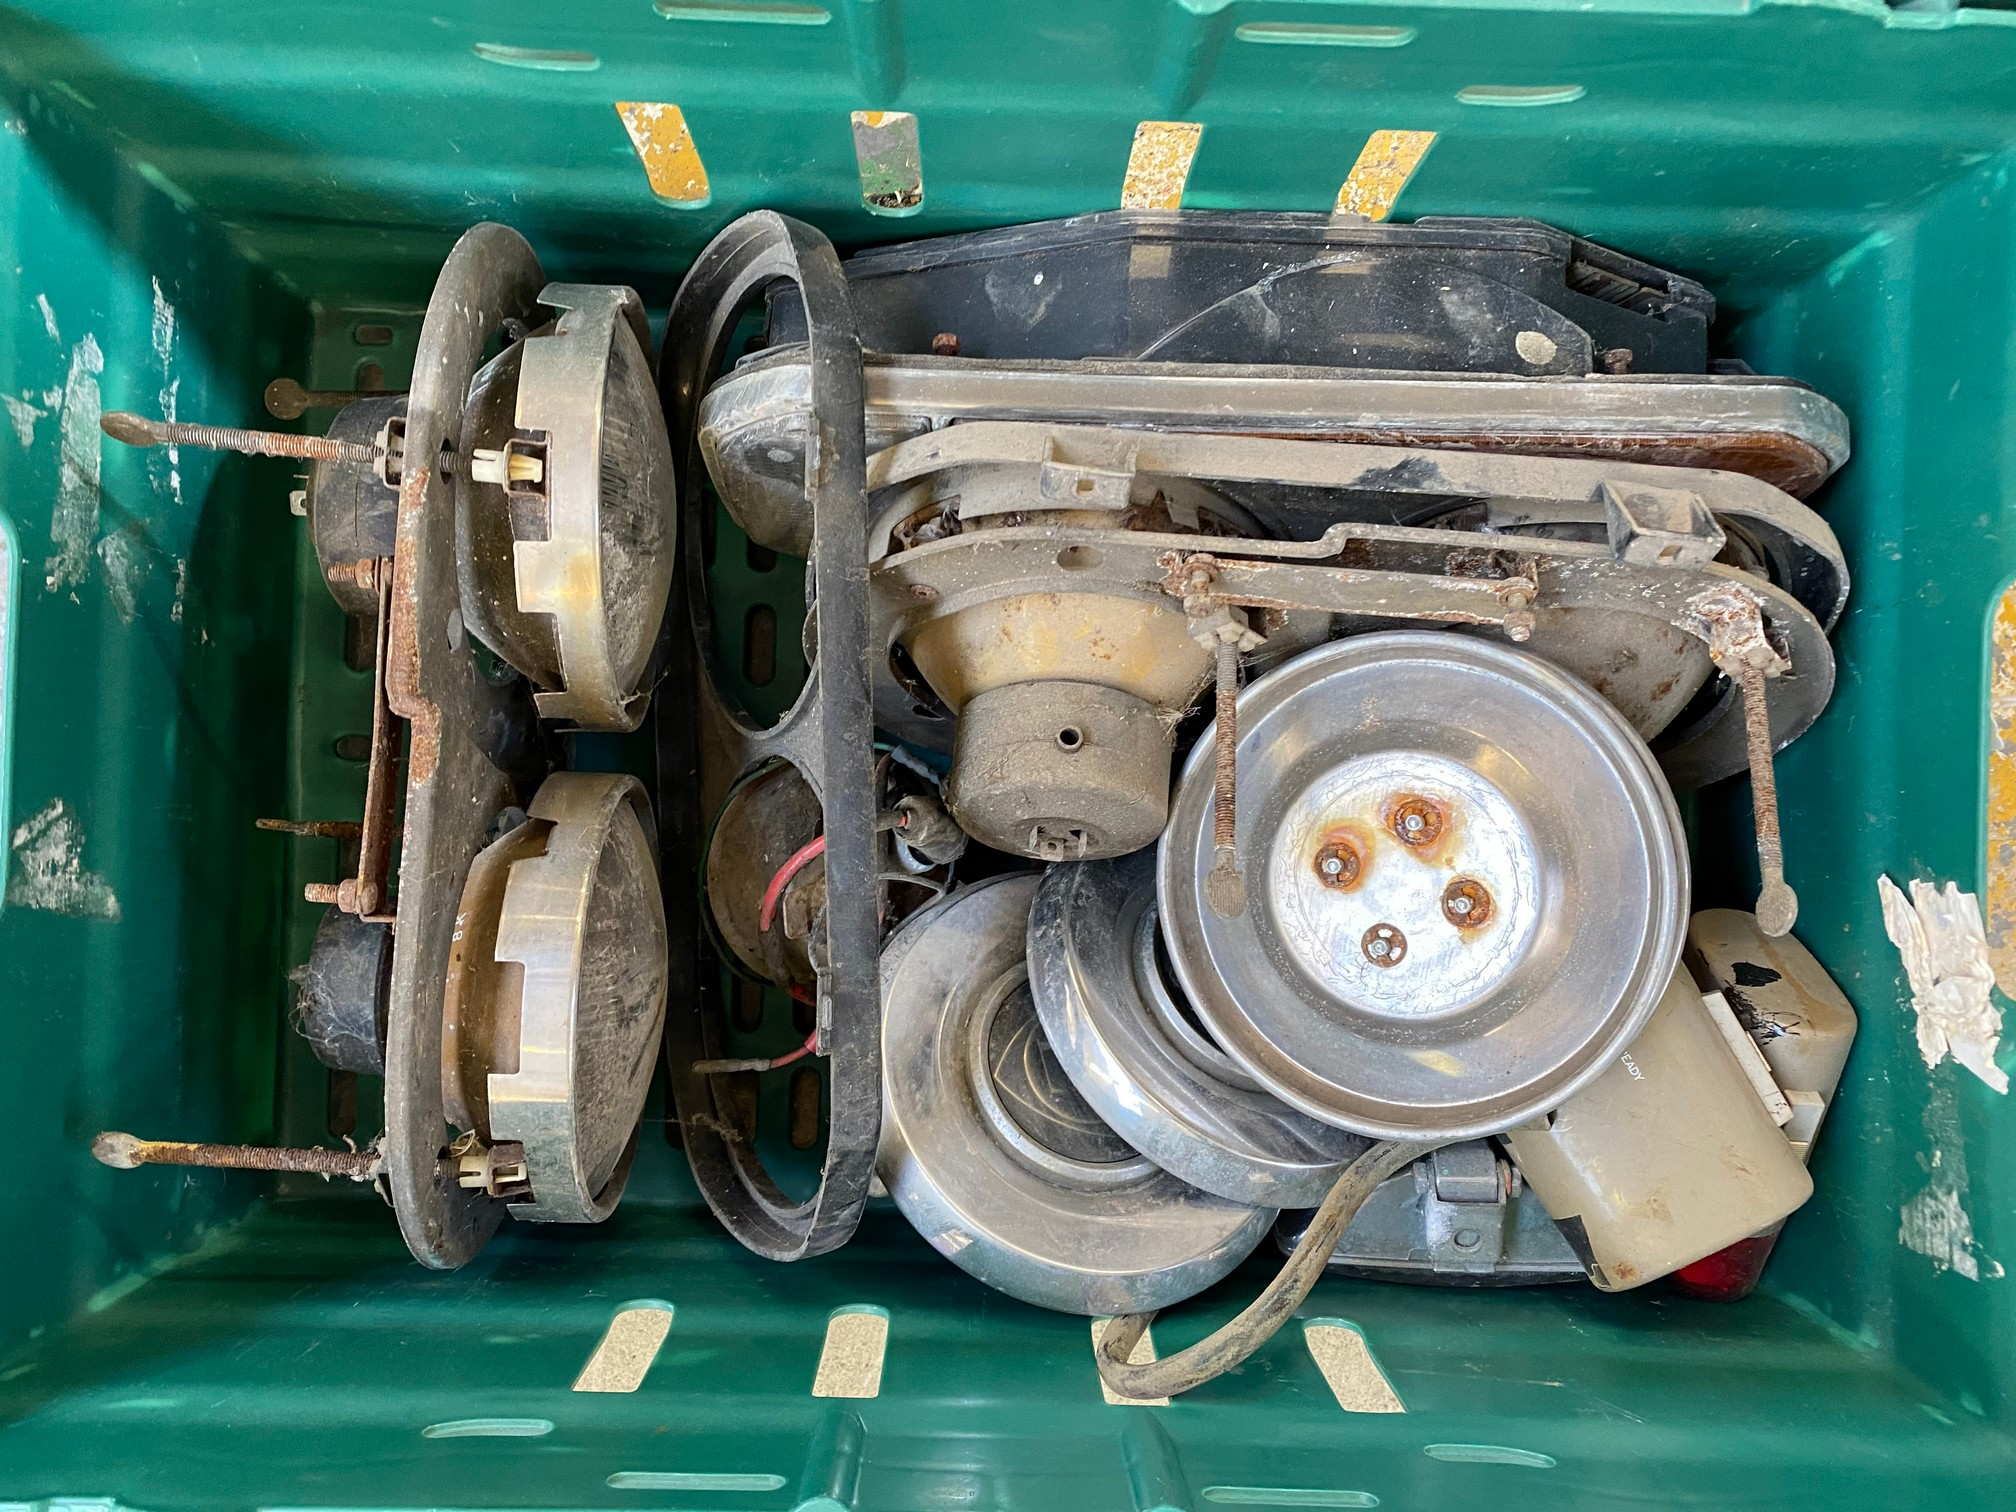 A box of Lancia spares including light clusters etc.